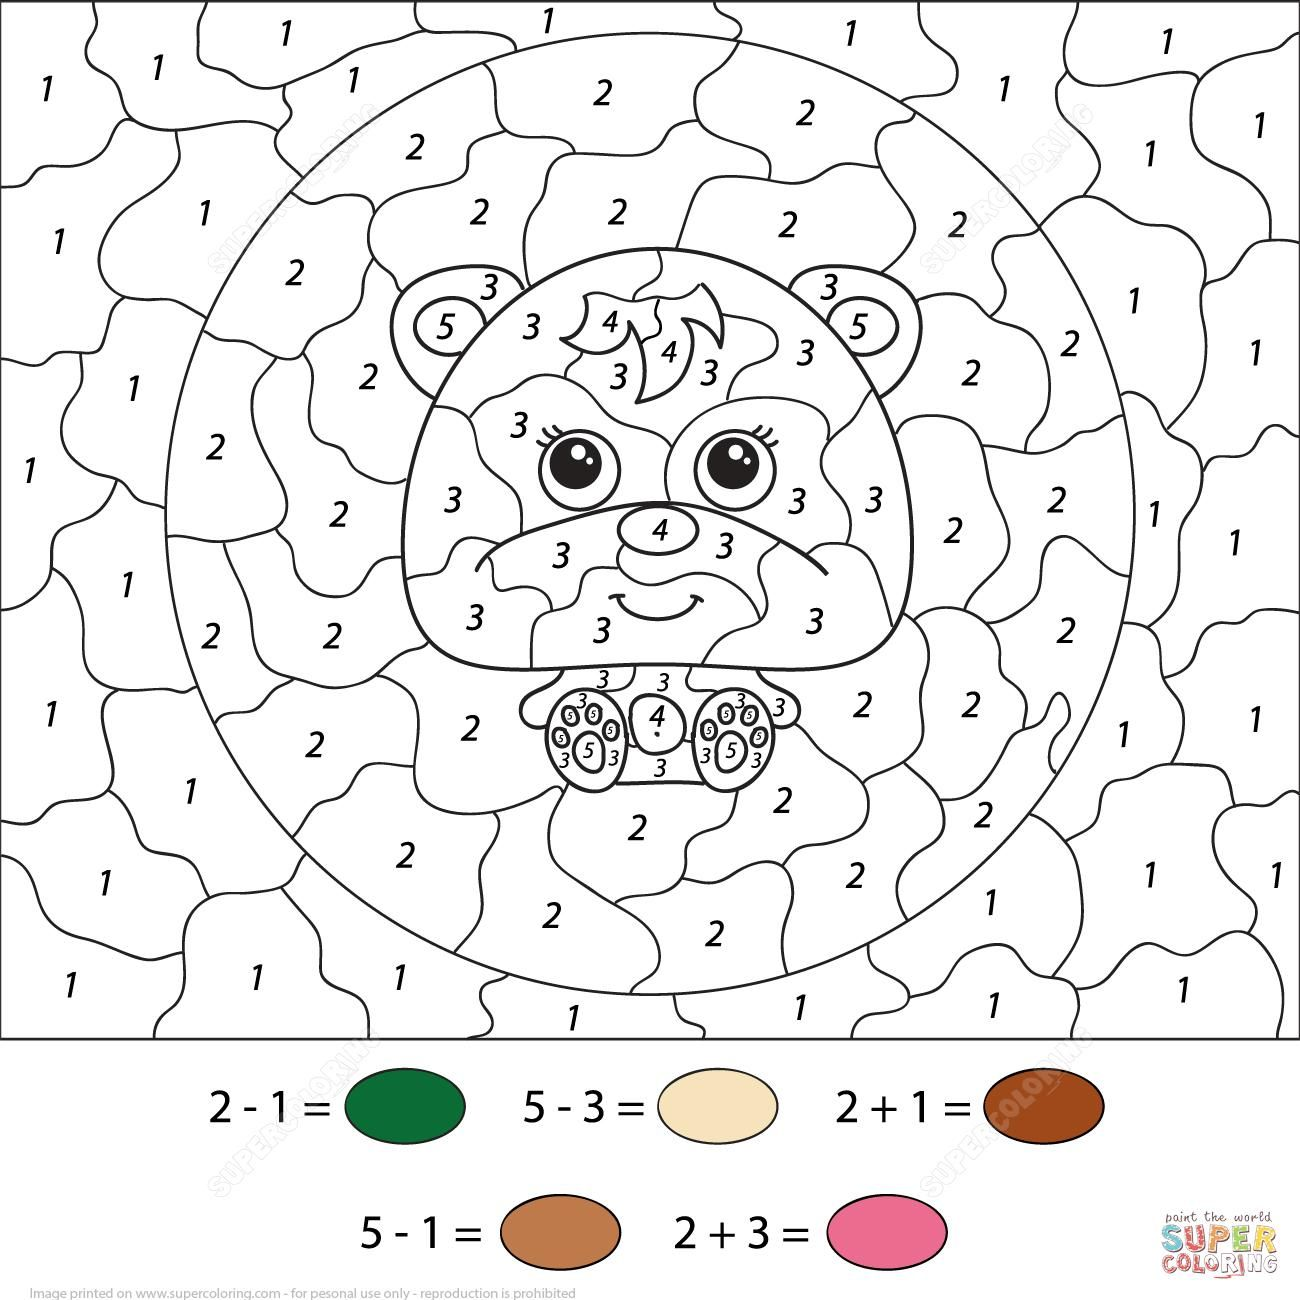 38 Coloring Worksheets In 2020 Free Printable Coloring Pages Coloring Pages Coloring Books